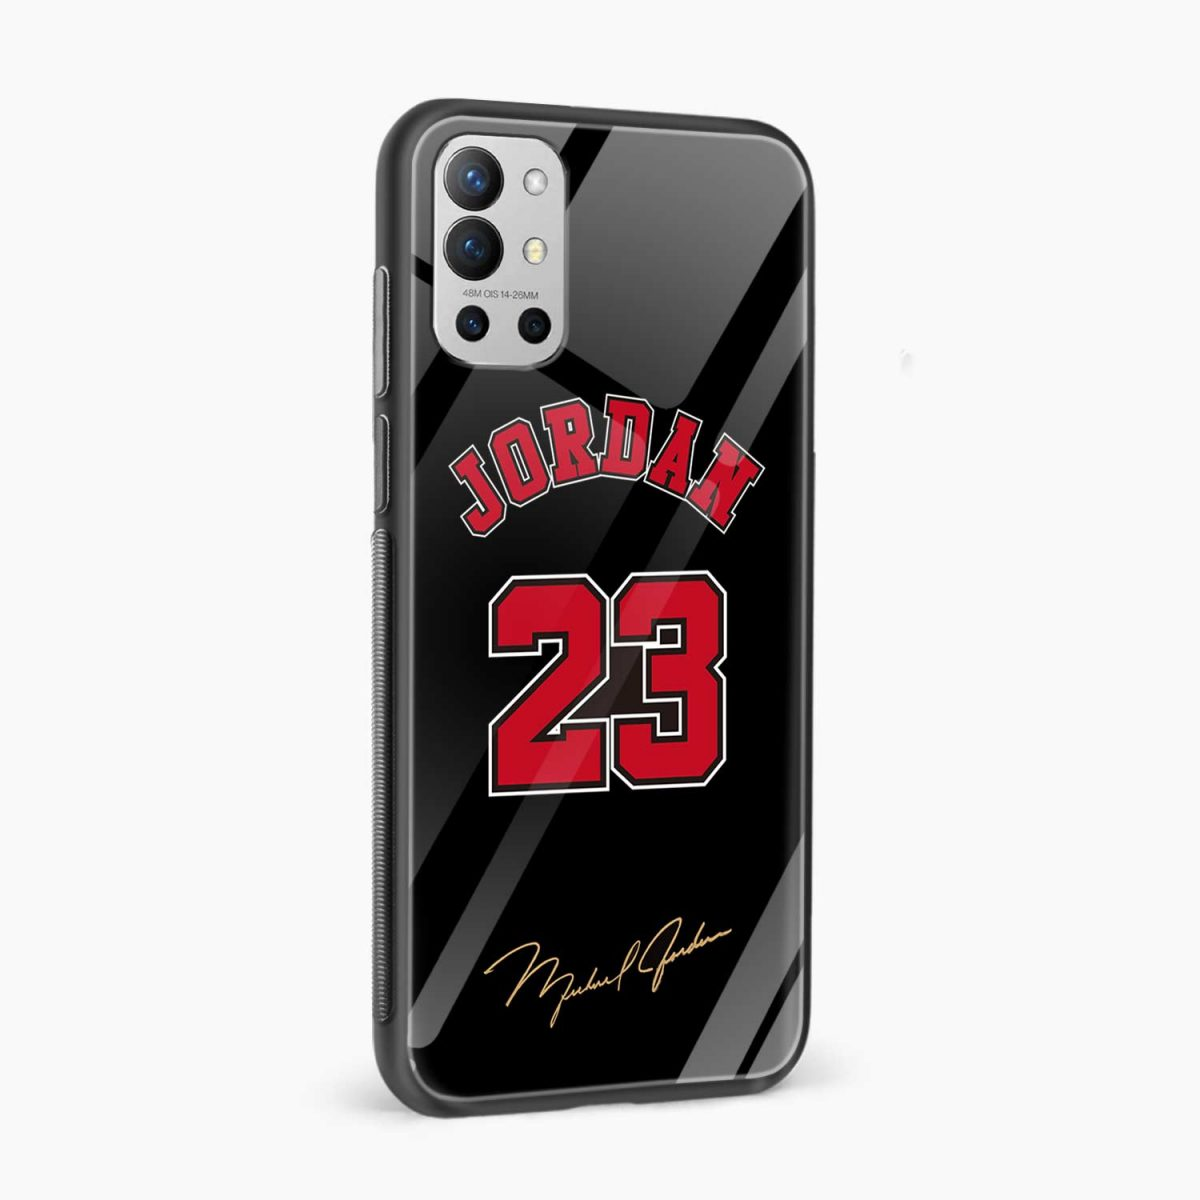 jordan 23 side view oneplus 9r back cover